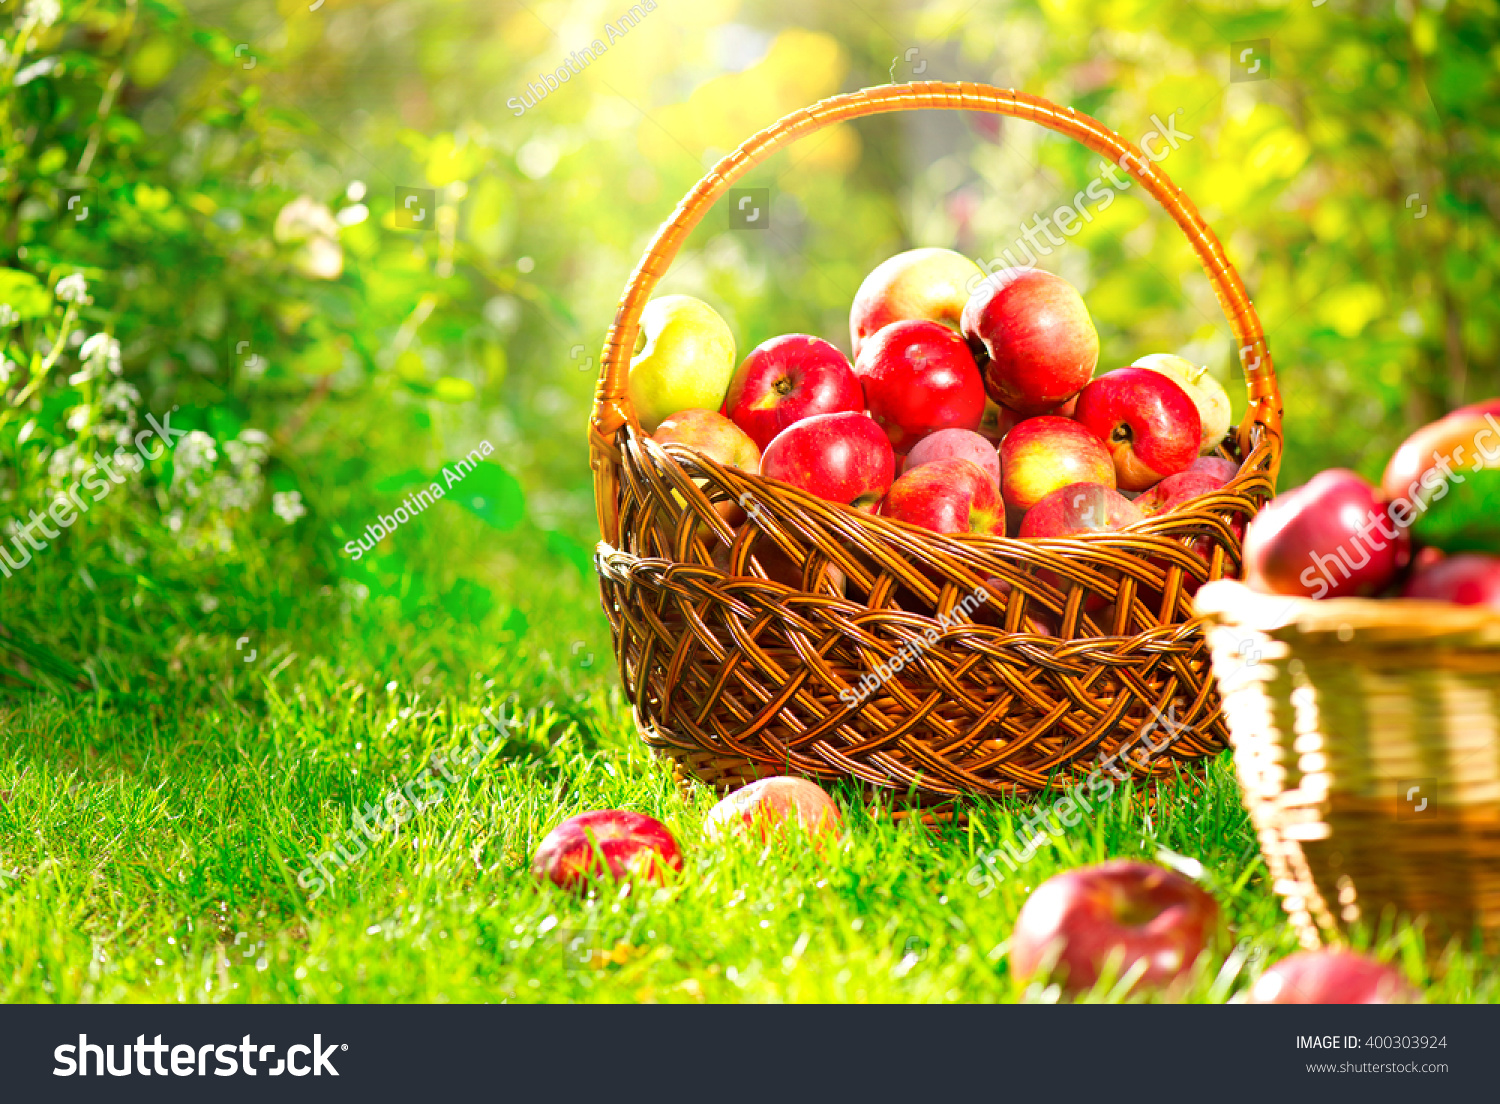 green and red apples in basket. organic apples in a basket outdoor. orchard. autumn garden. harvest season concept. green and red